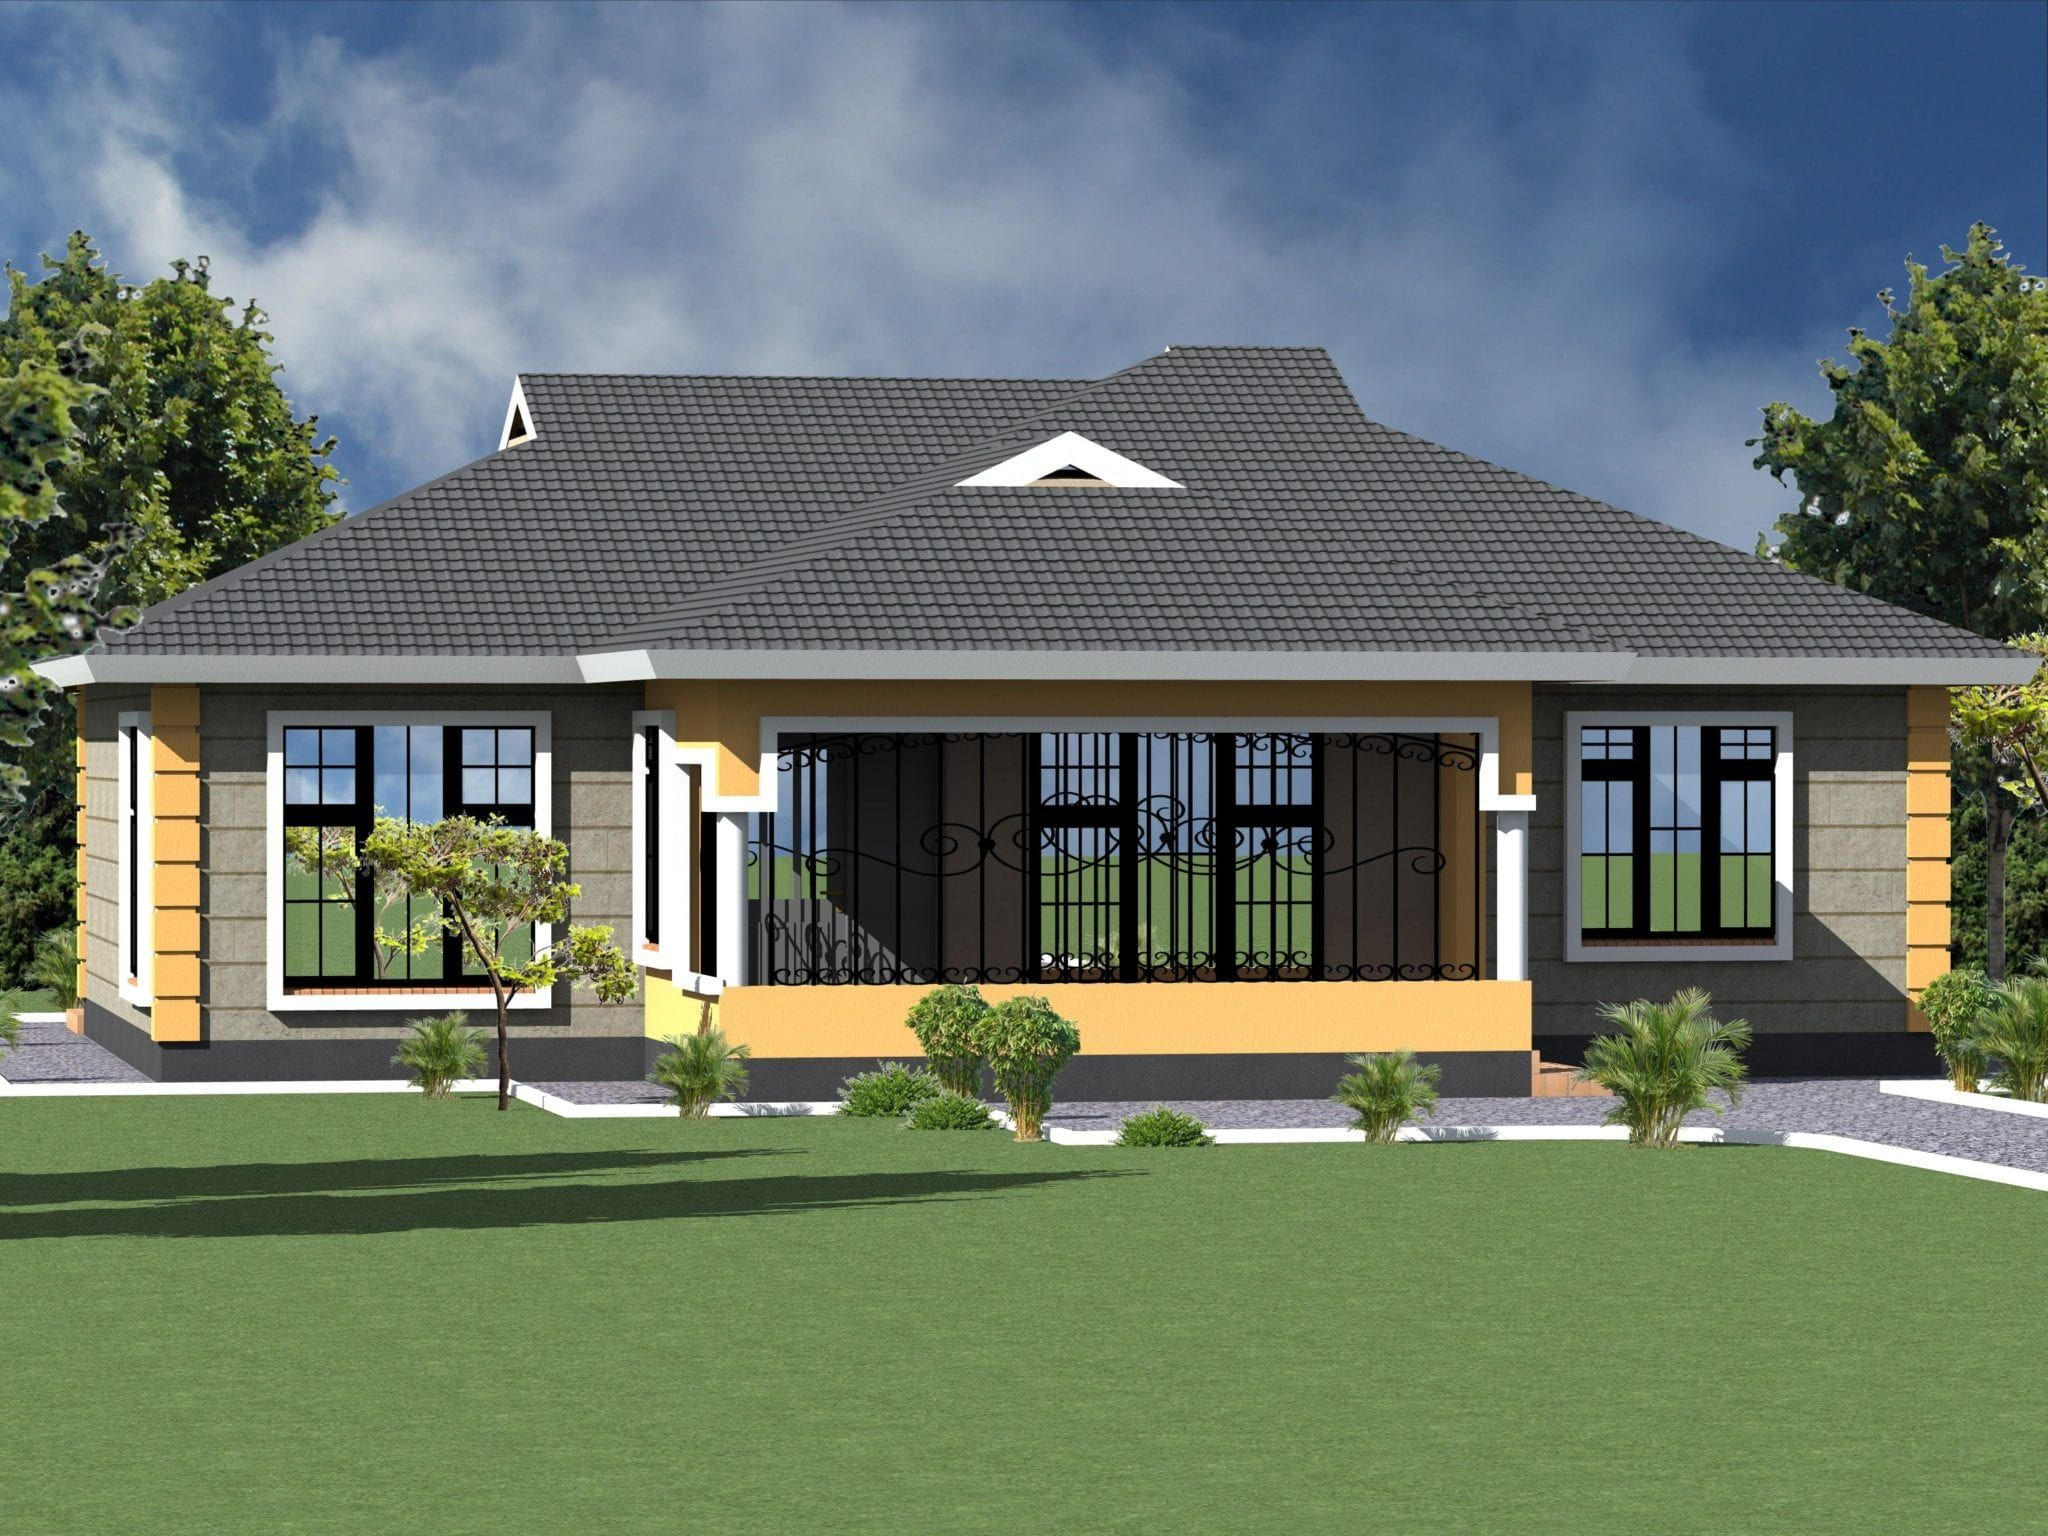 Best House Plans In Kenya Bungalow House Plans Modern Bungalow House Bungalow House Design